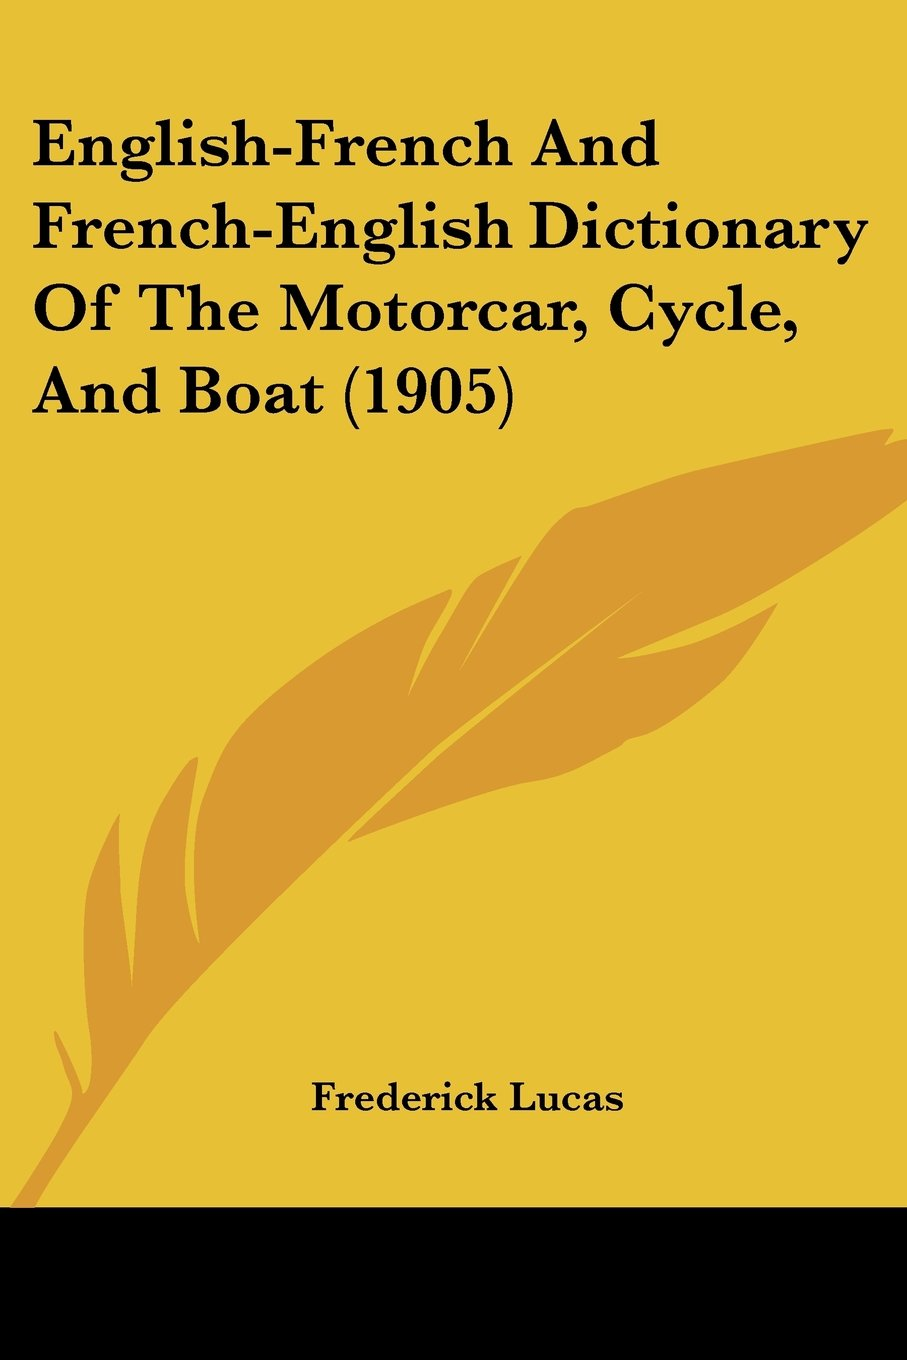 Download English-French And French-English Dictionary Of The Motorcar, Cycle, And Boat (1905) PDF